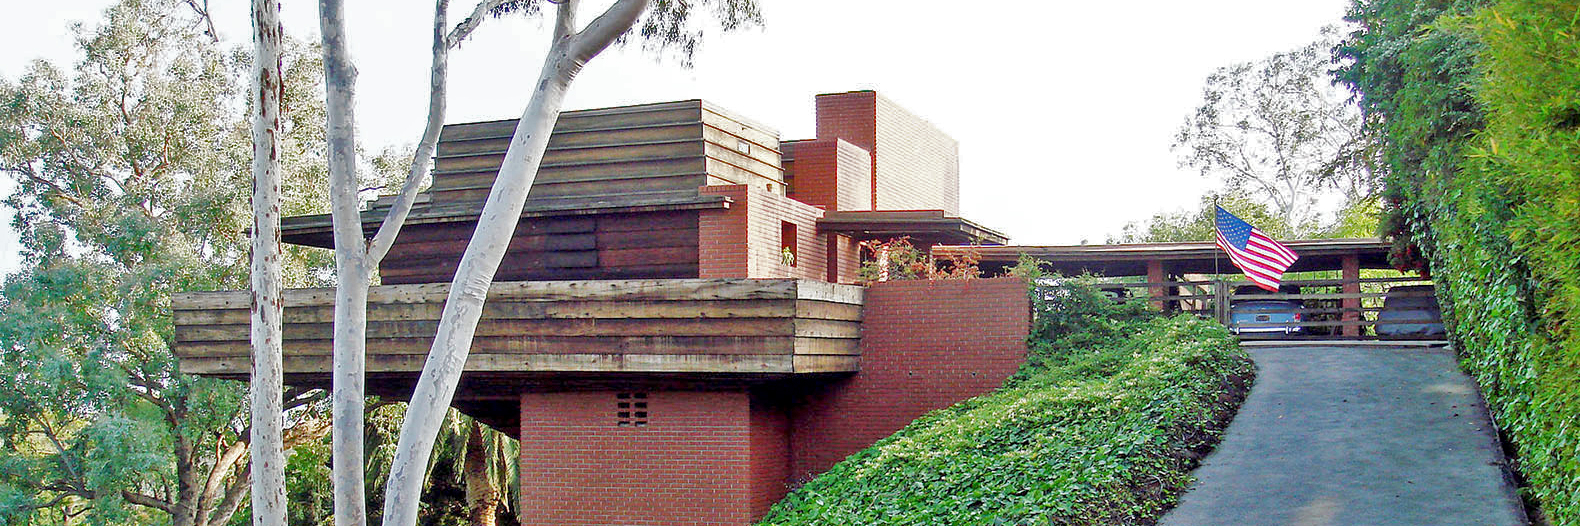 frank lloyd wright inhabitat green design innovation frank lloyd wright s usonian style george sturges house to be sold at auction